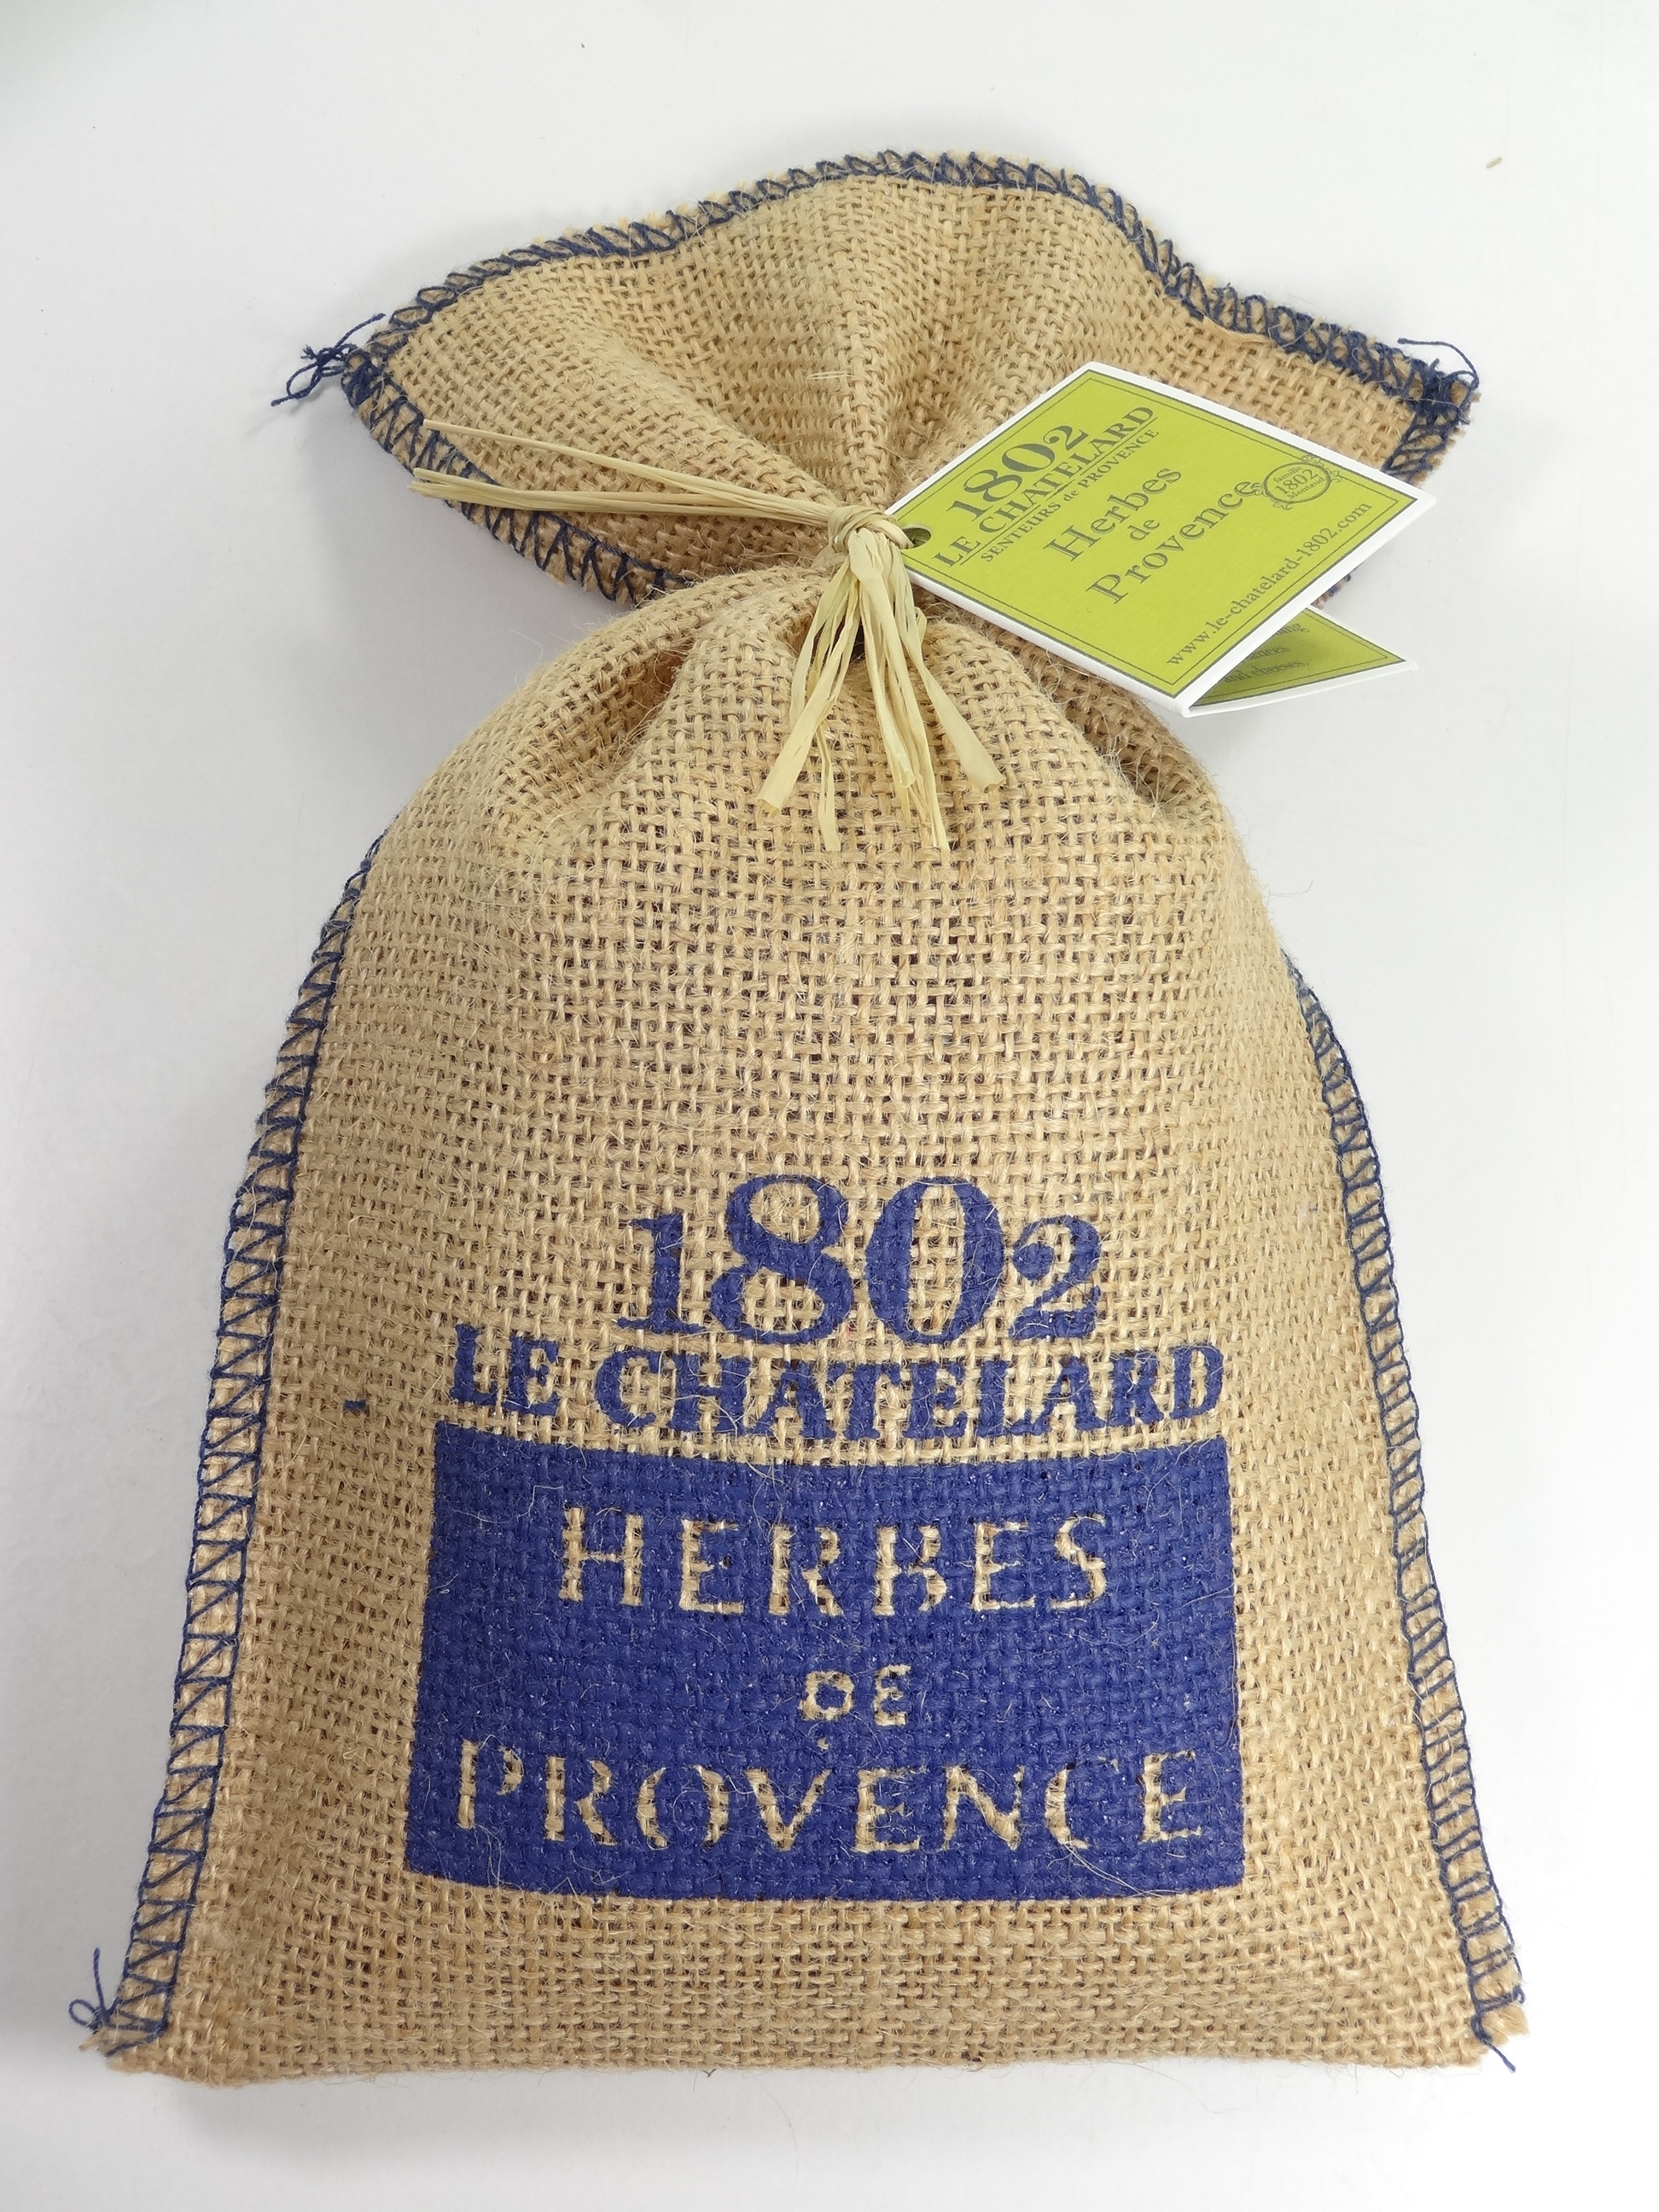 herbes de provence sachet toile de jute motif village 150g motif bleu souvenirs et id es. Black Bedroom Furniture Sets. Home Design Ideas